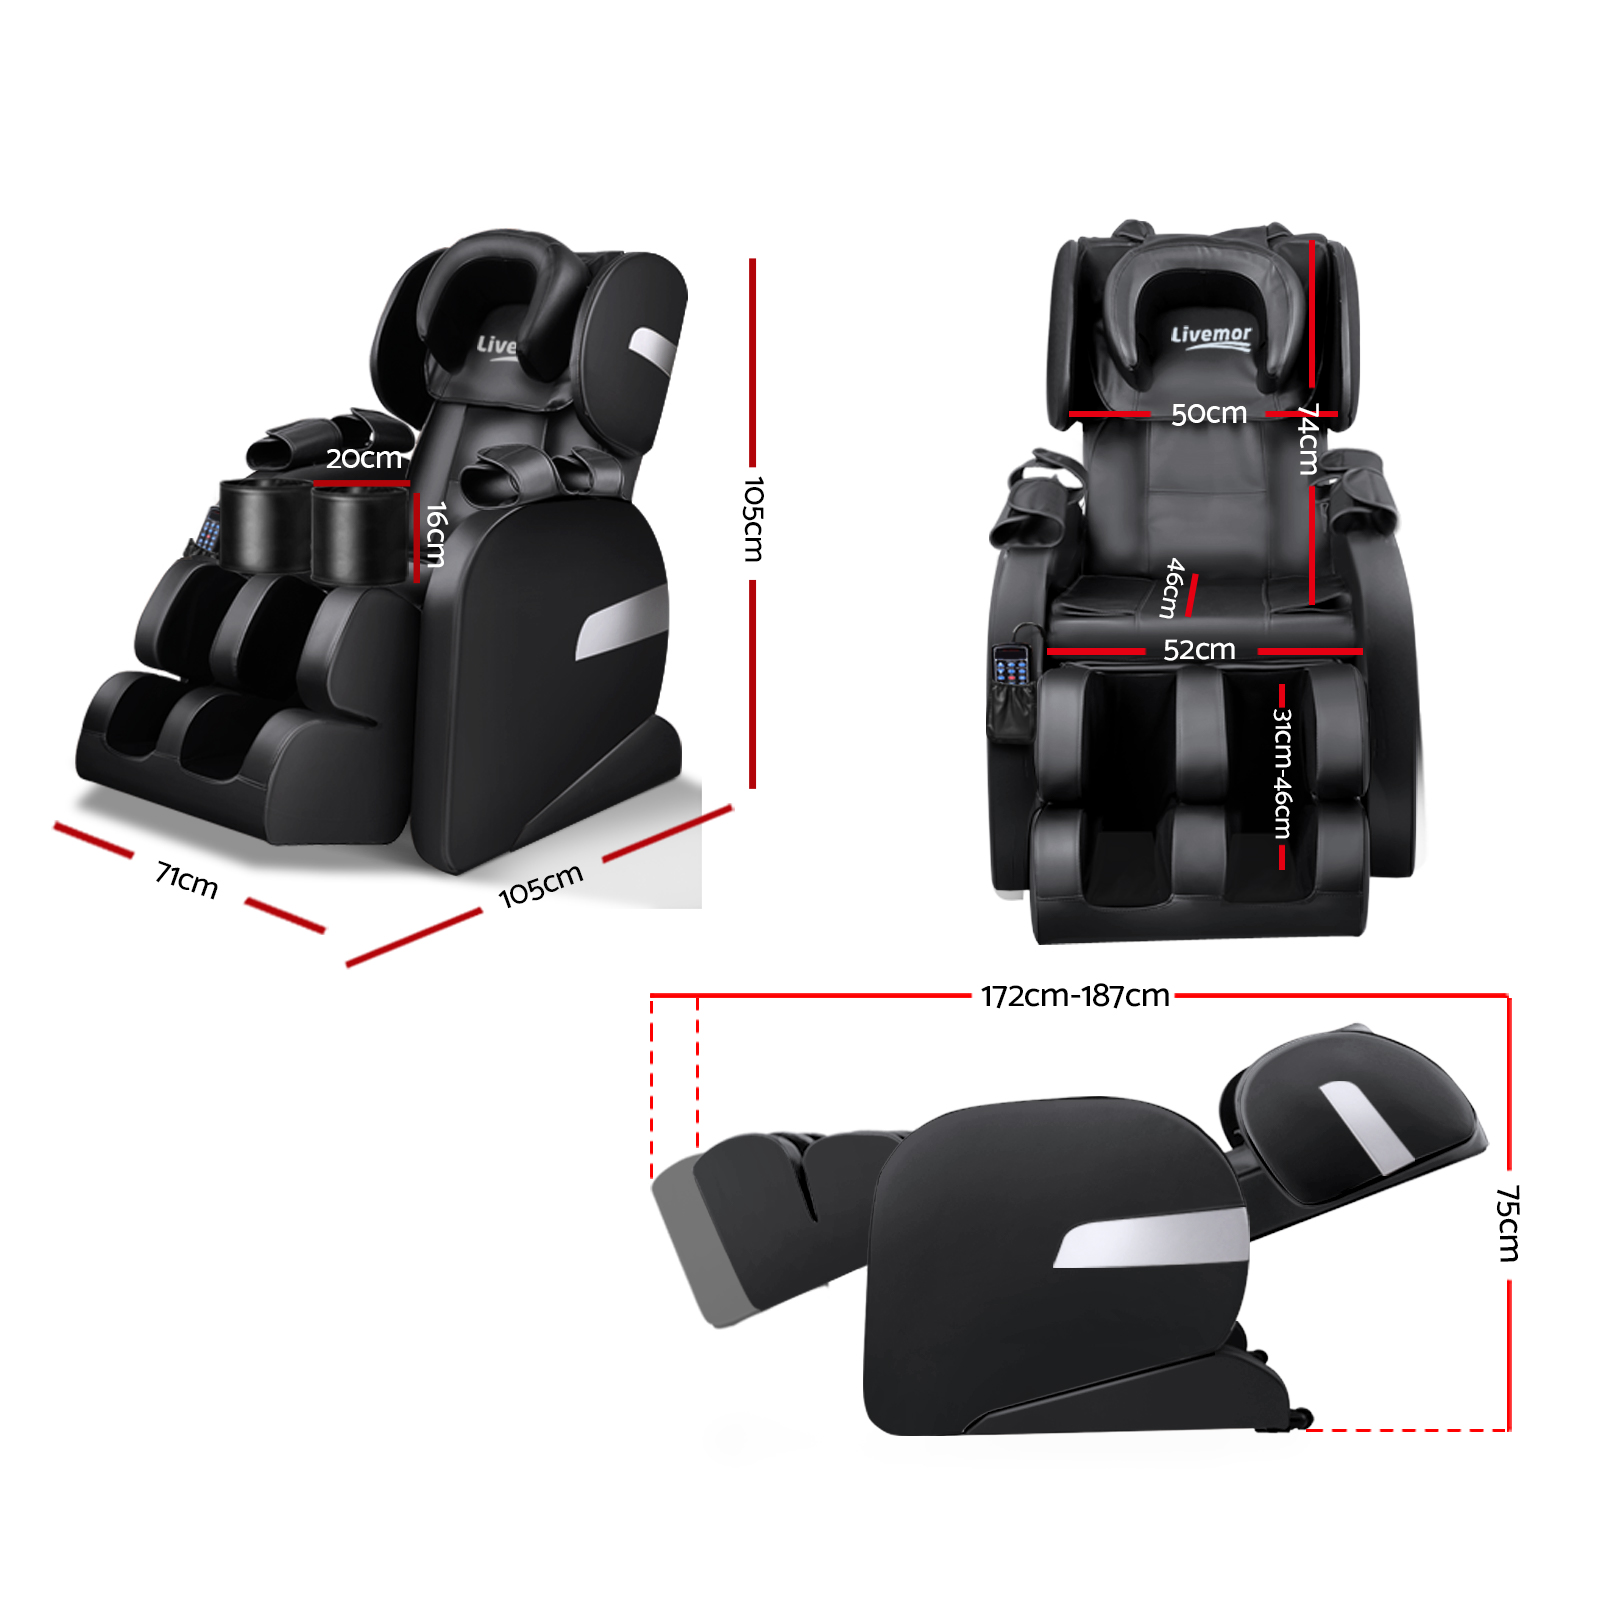 Brand New Livemor Electric Massage Chair – Black Fast Free Shipping